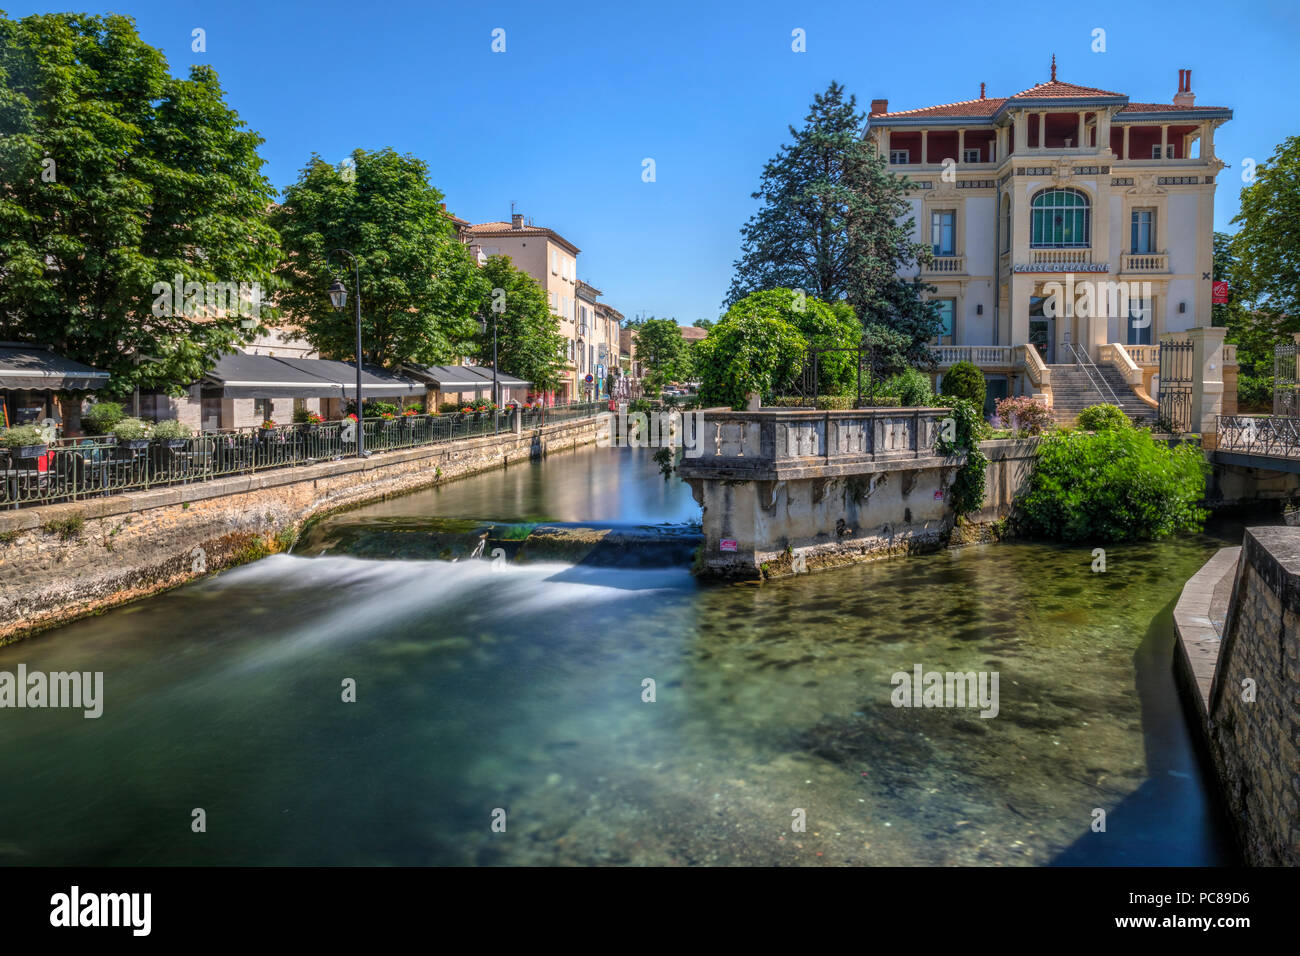 Meteo France Avignon L Isle Sur La Sorgue Vaucluse Provence France Stock Photo